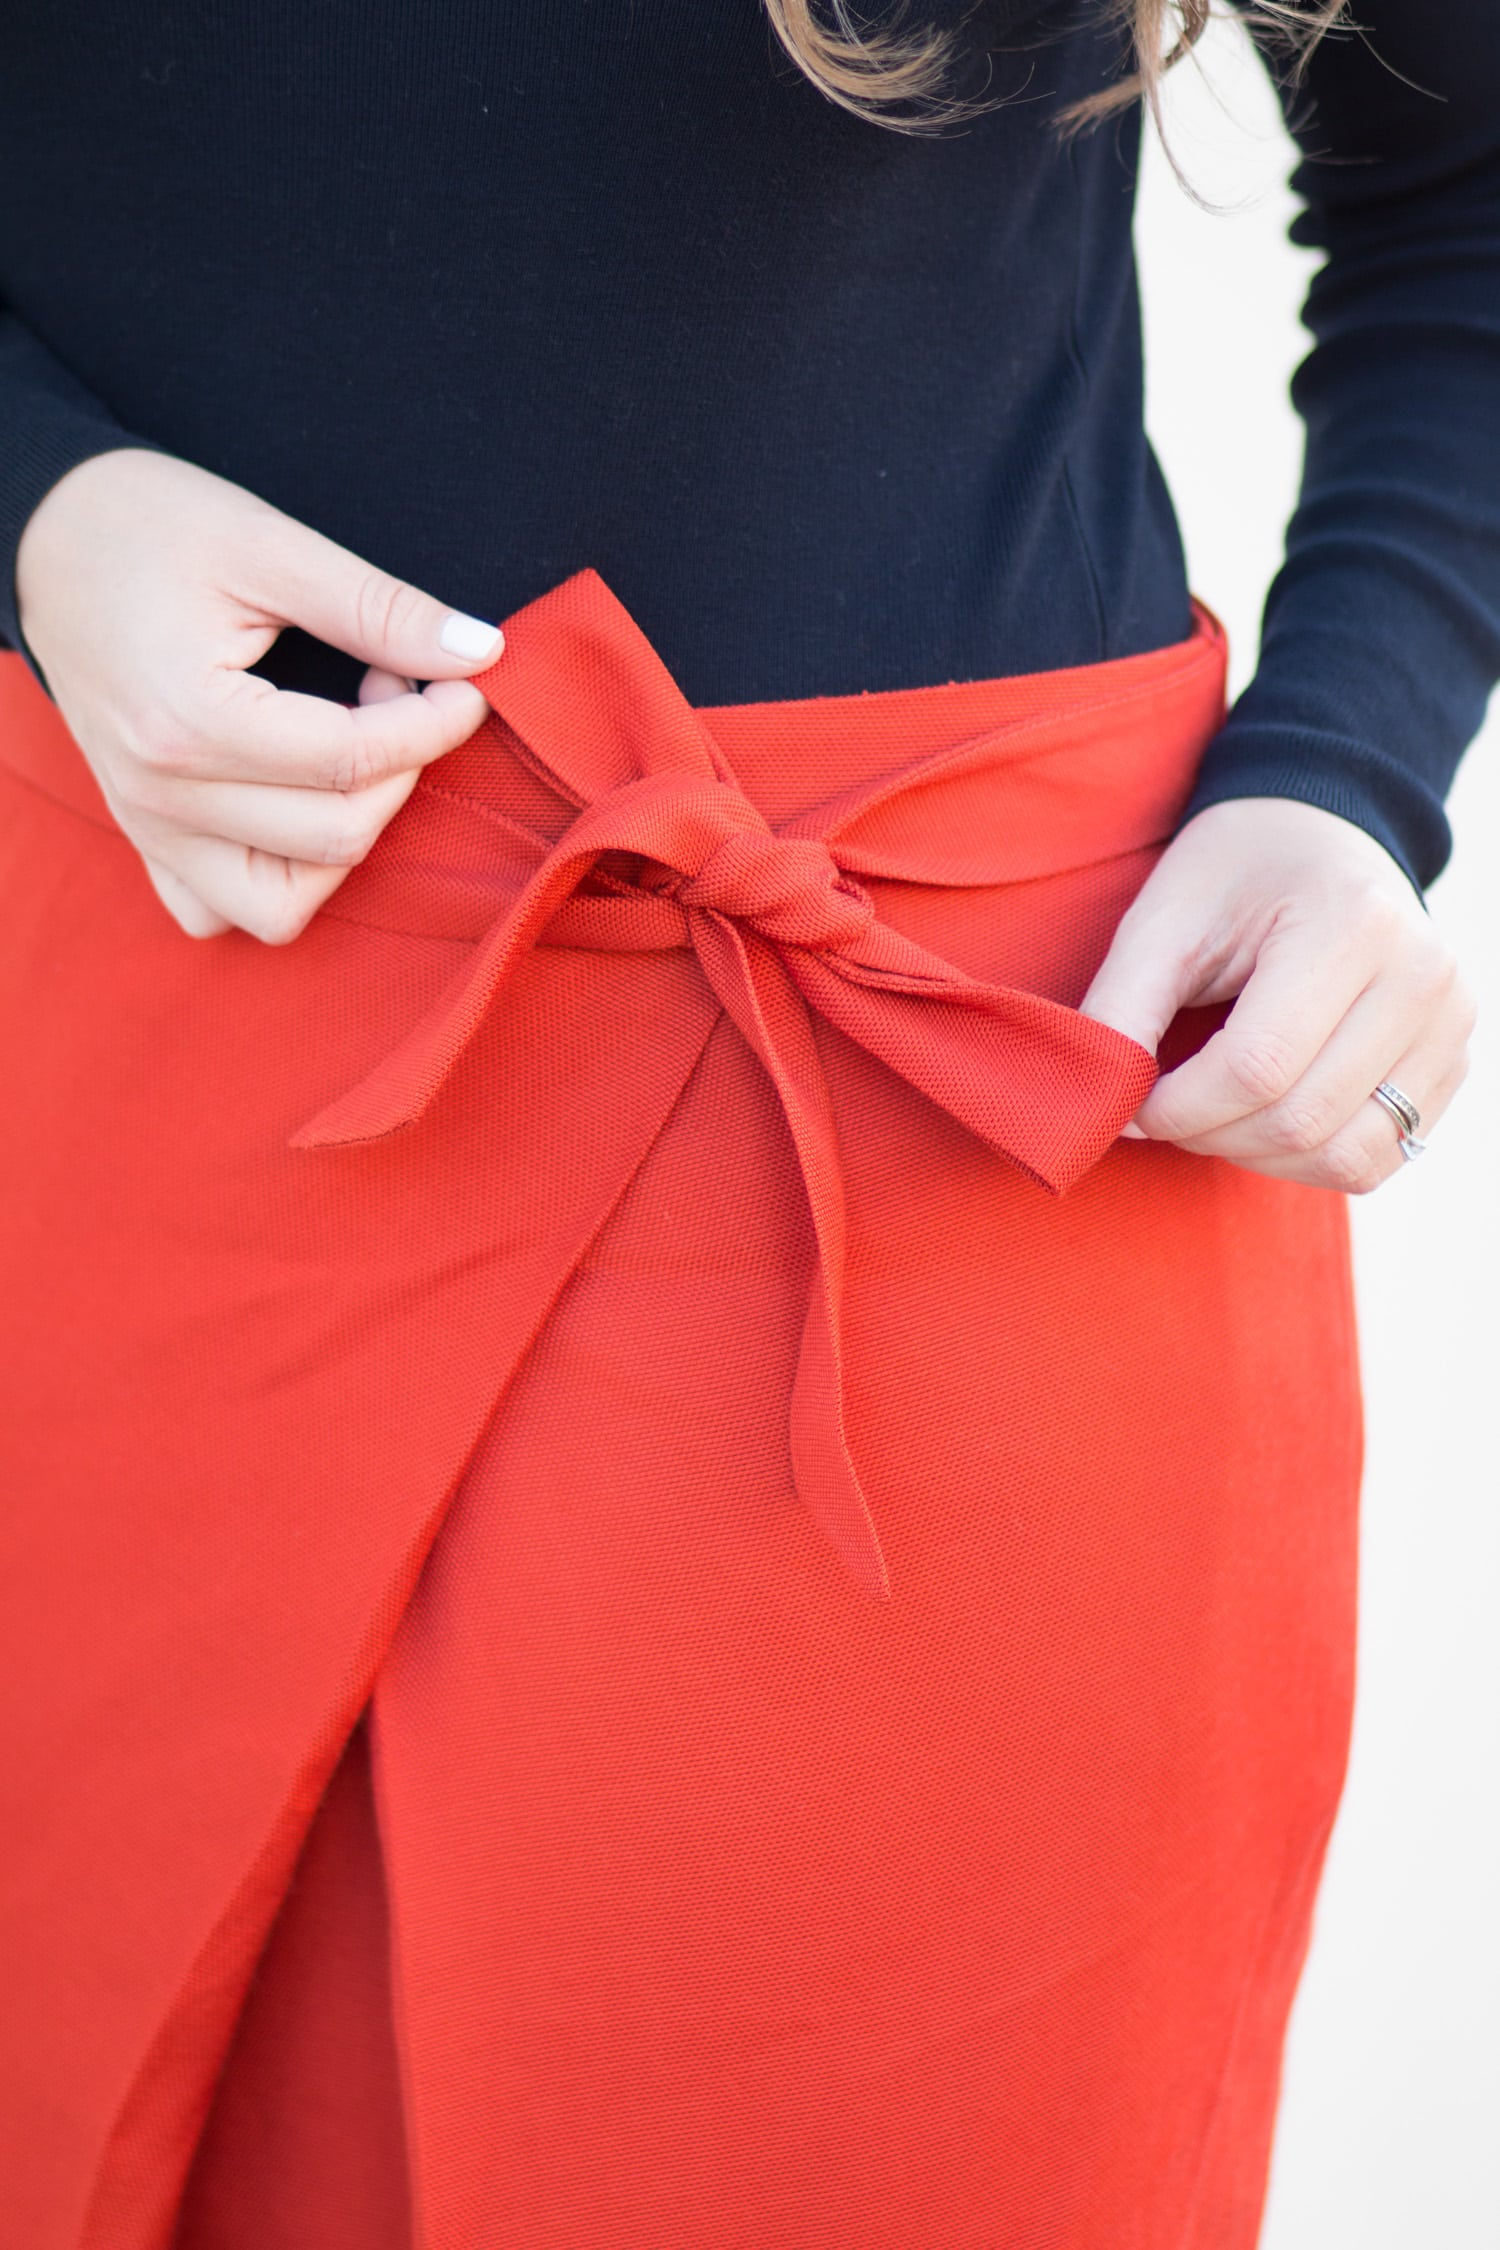 banana-republic-orange-skirt-tied-with-bow-5319